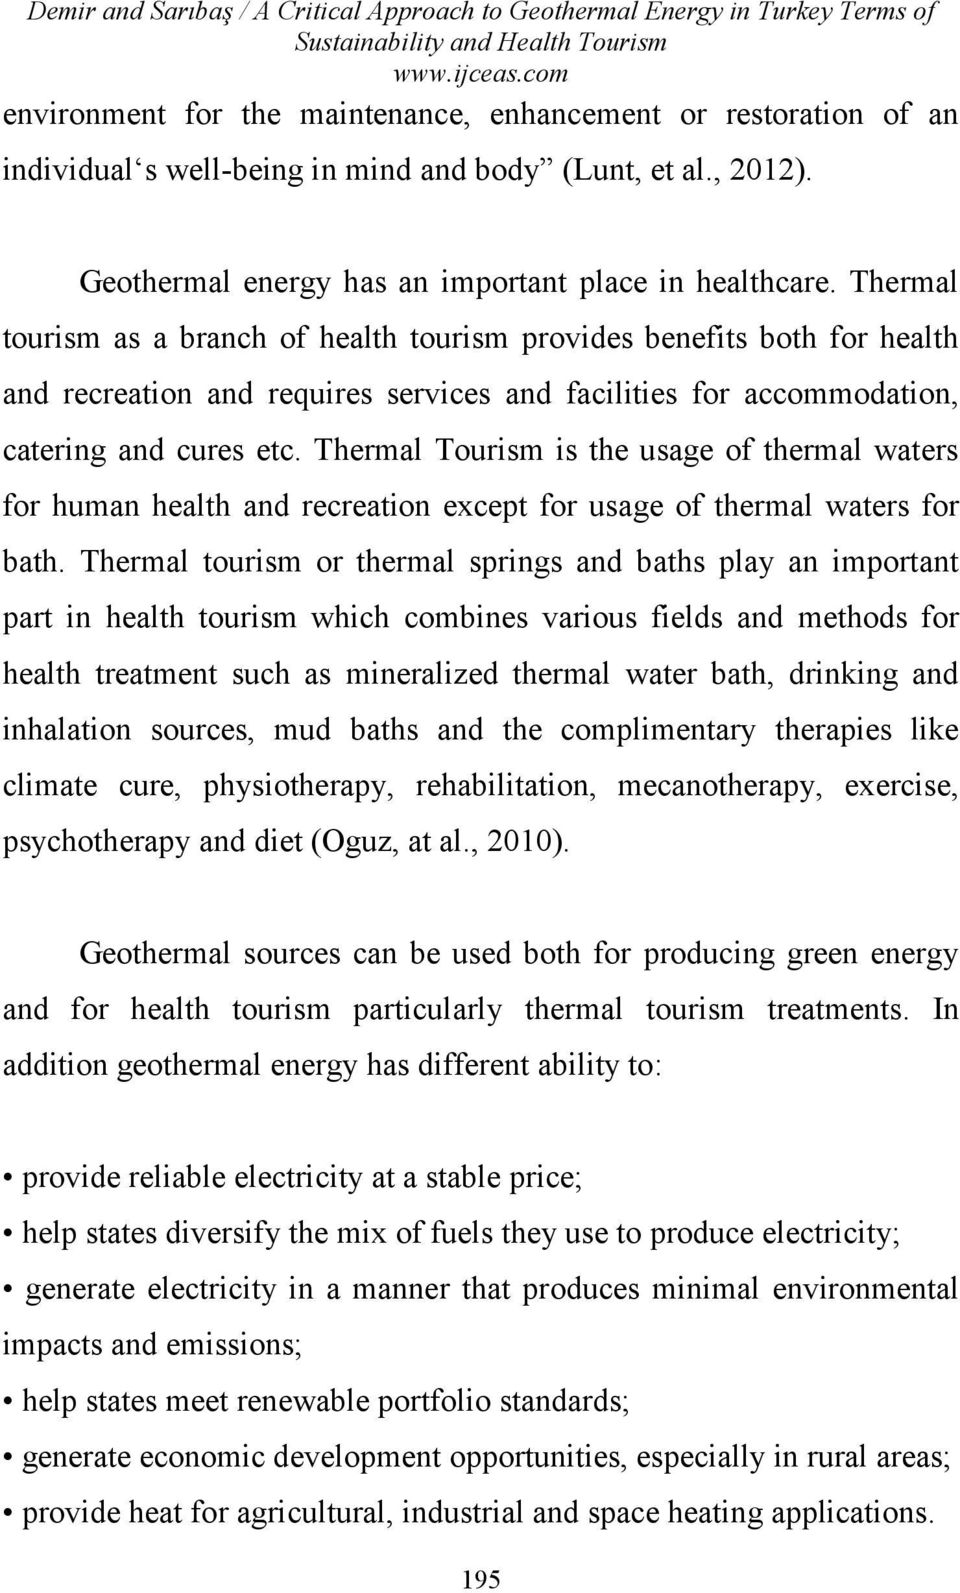 Thermal tourism as a branch of health tourism provides benefits both for health and recreation and requires services and facilities for accommodation, catering and cures etc.